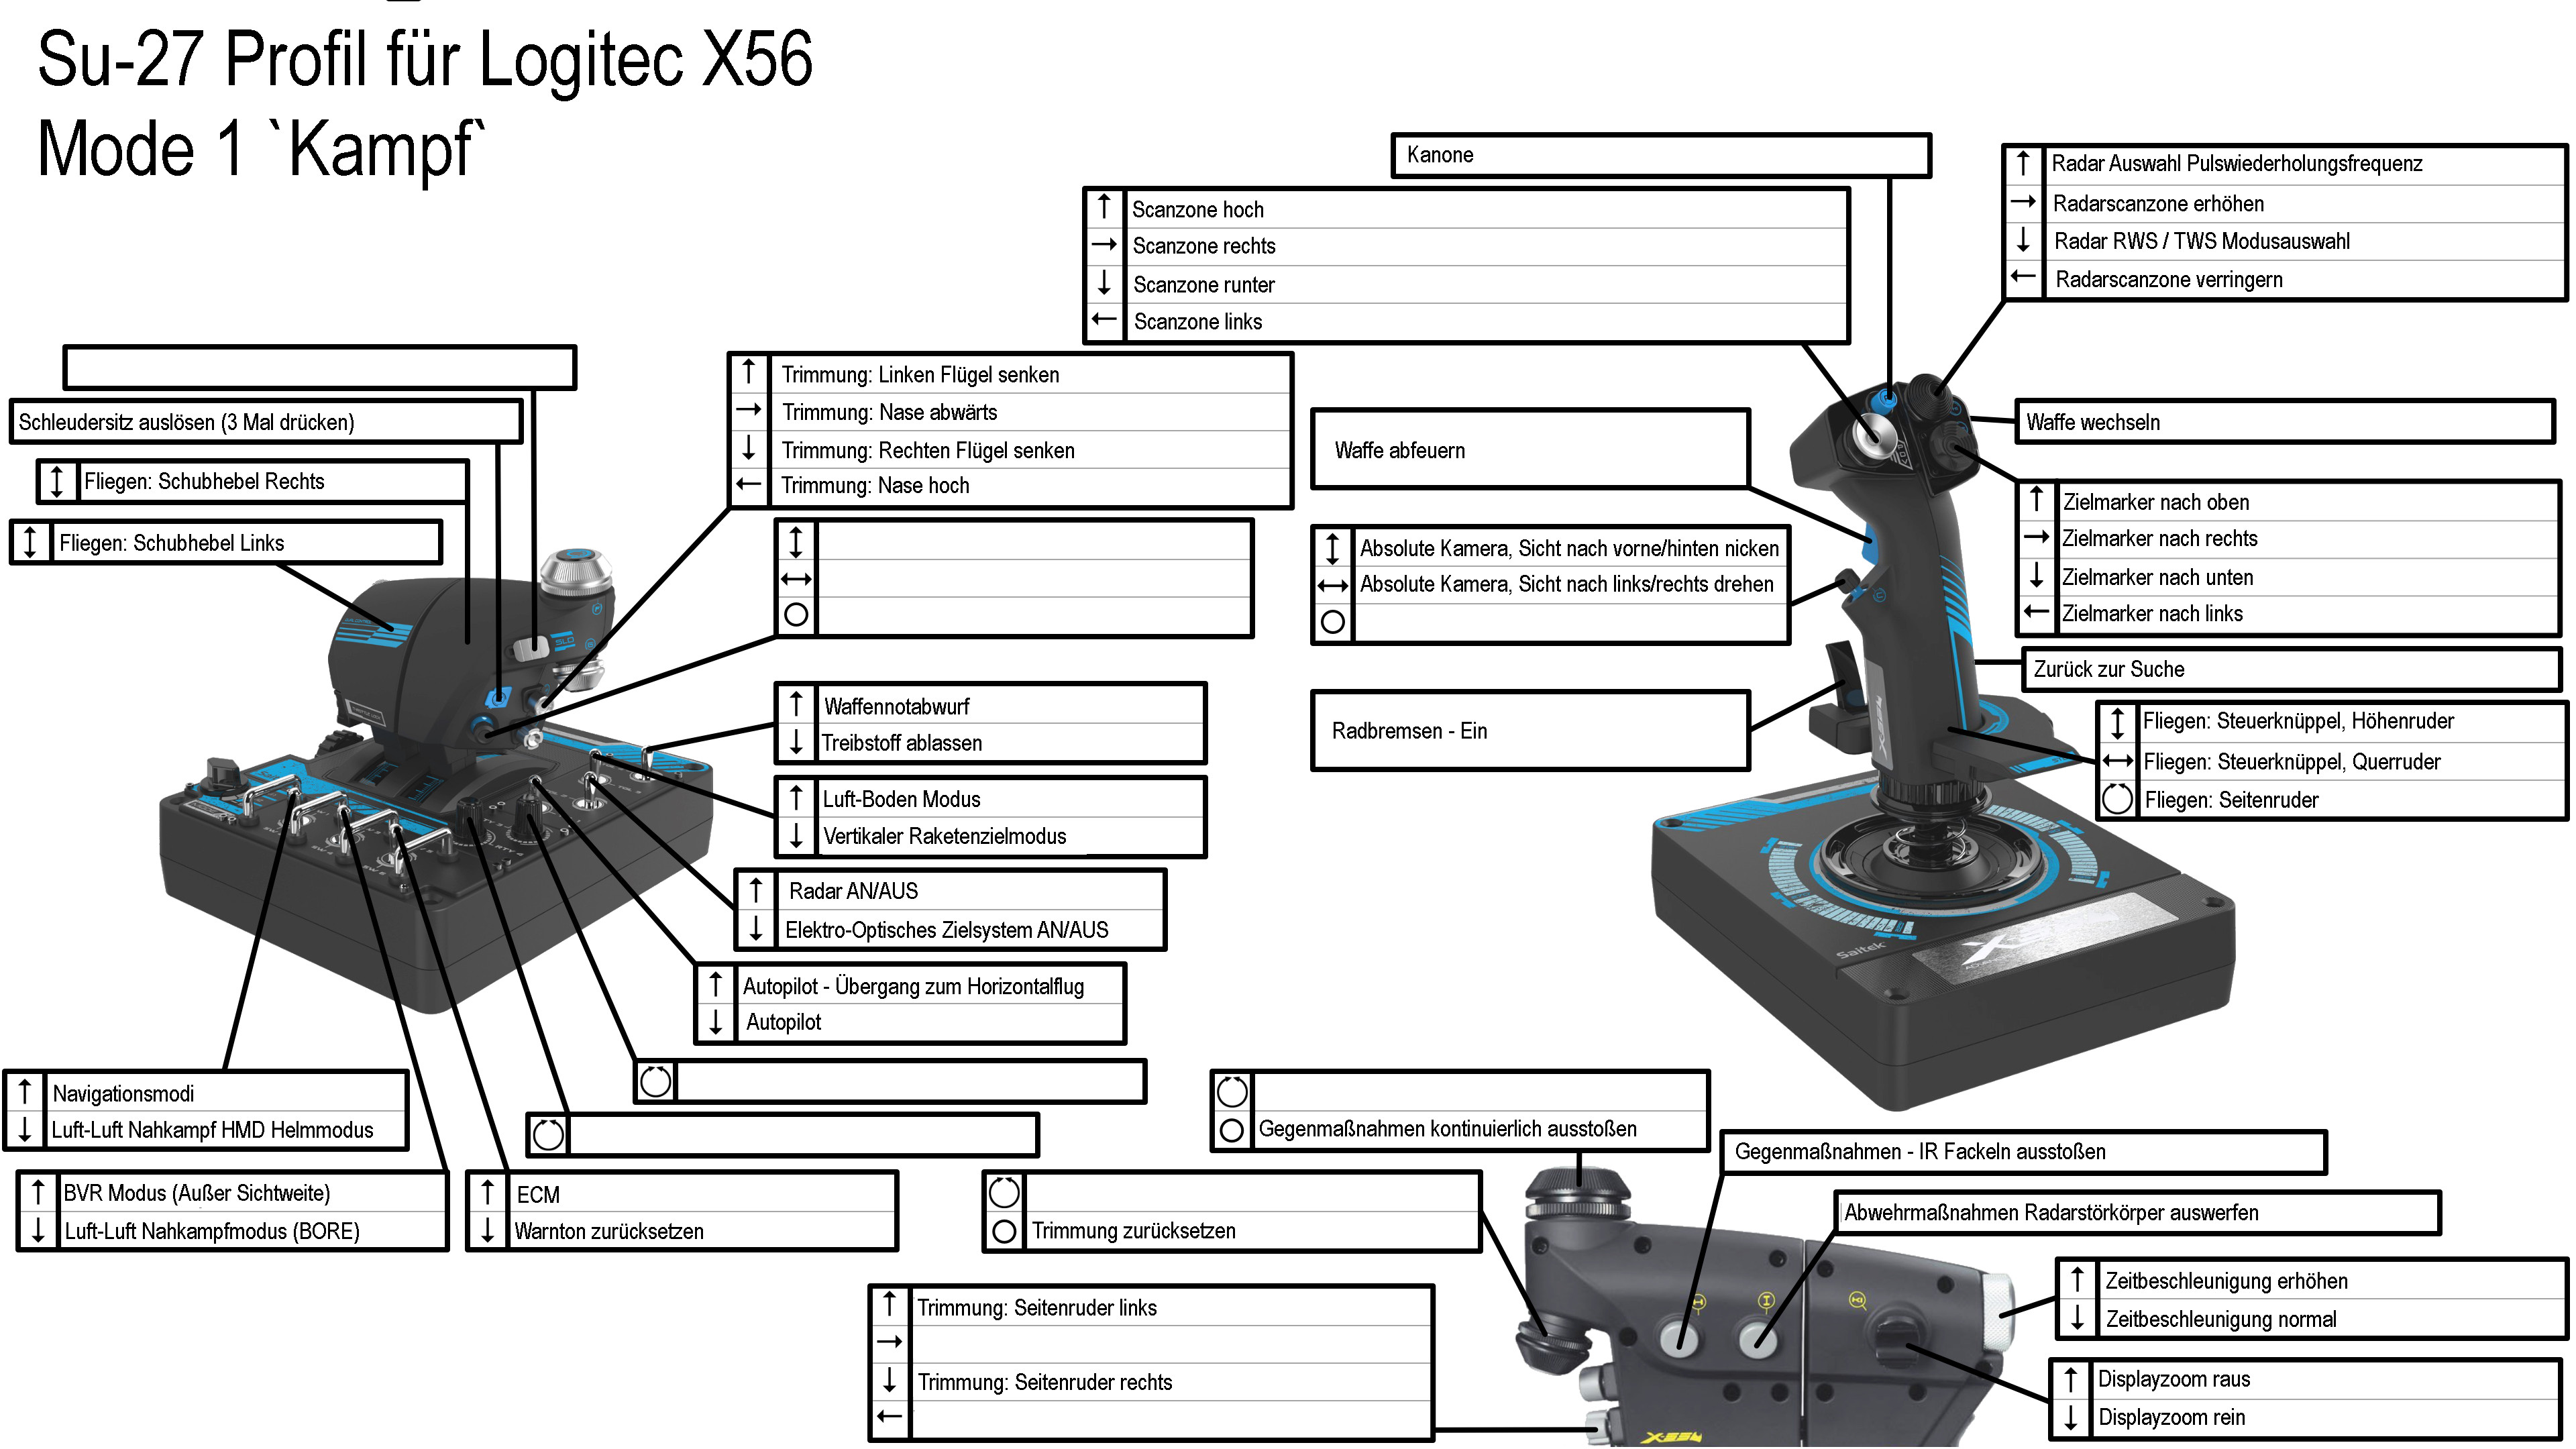 "Logitech X56 Profile for Su-27 ""3 Mode"" (German)"